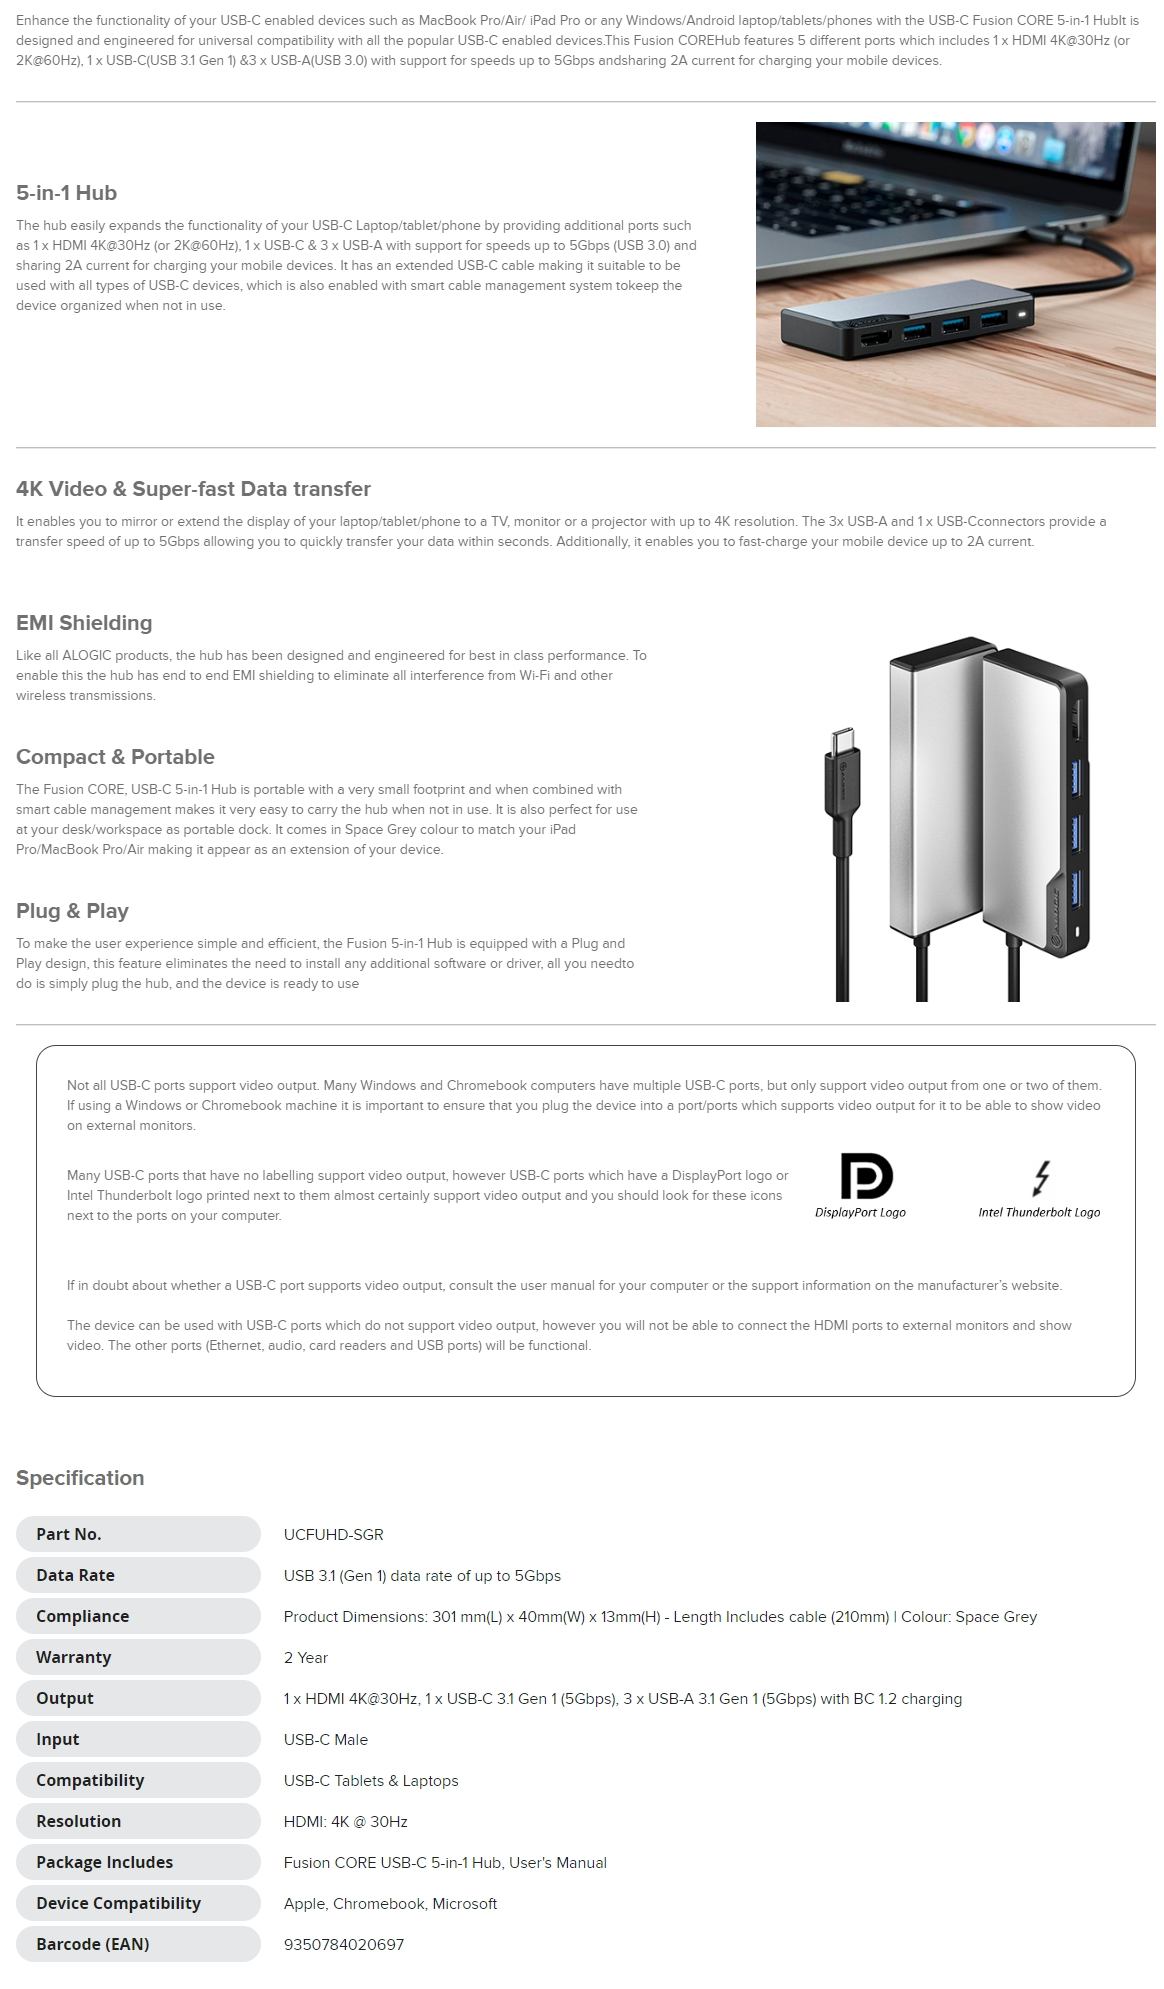 A large marketing image providing additional information about the product ALOGIC USB-C Fusion CORE 5-in-1 Hub - Additional alt info not provided